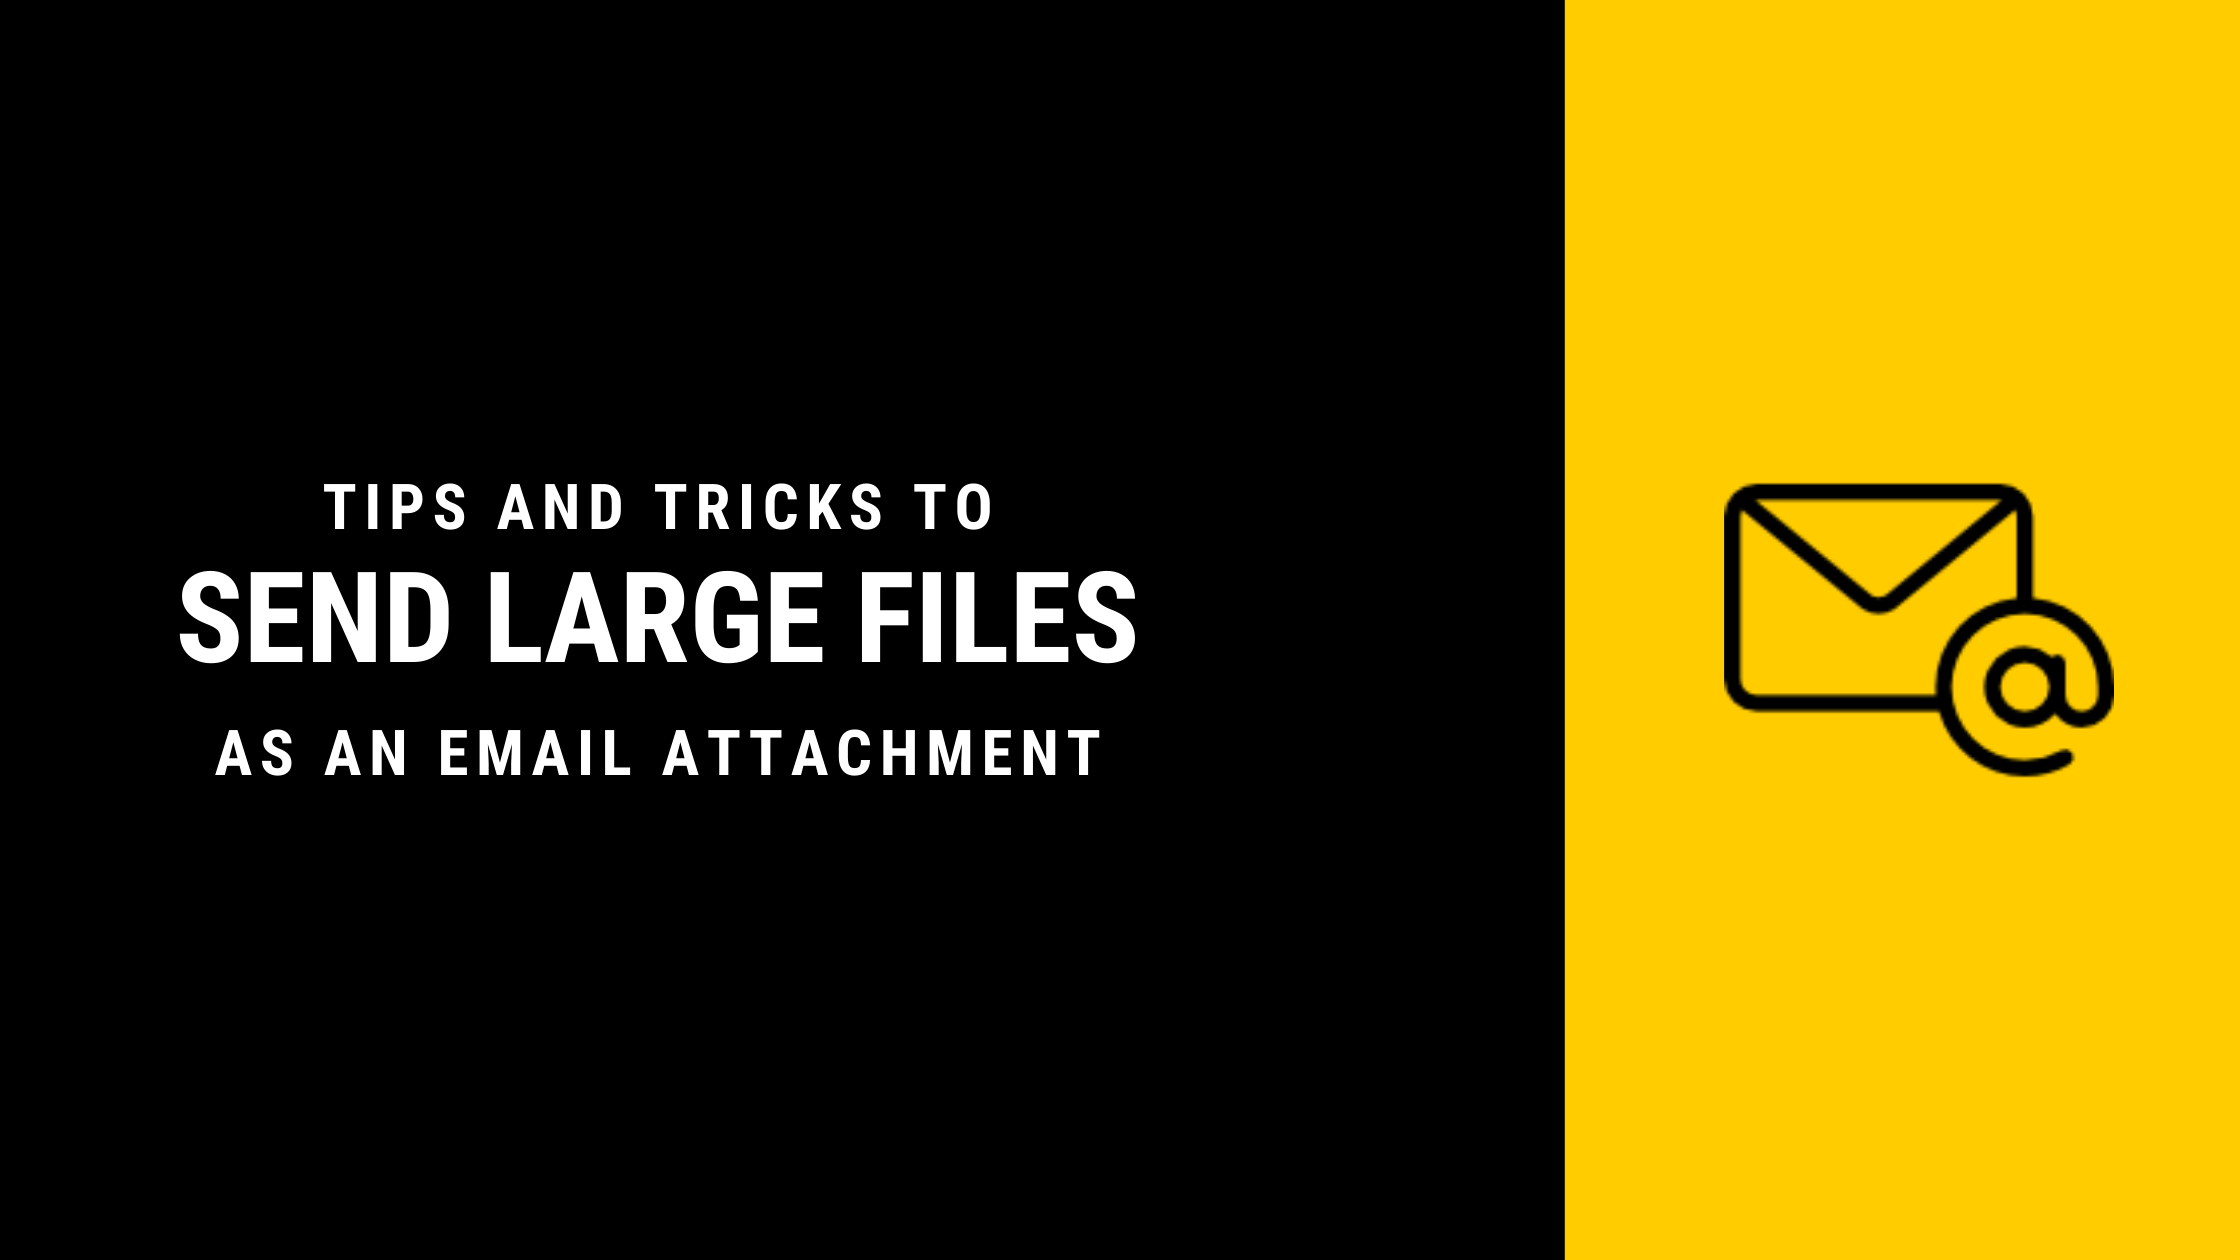 Tips and Tricks for sending large files as email attachment